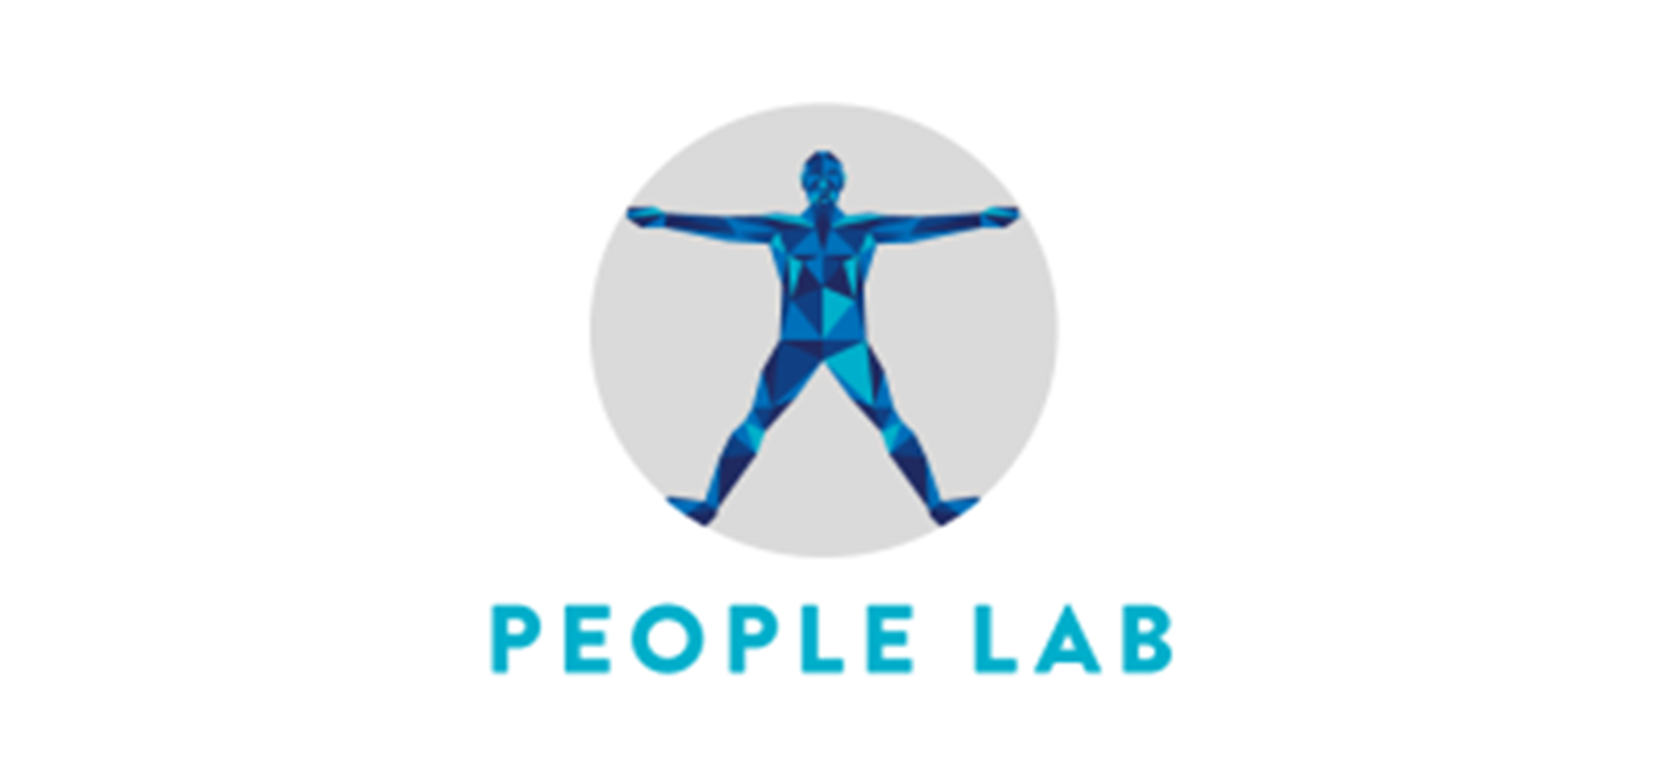 PEOPLE LAB